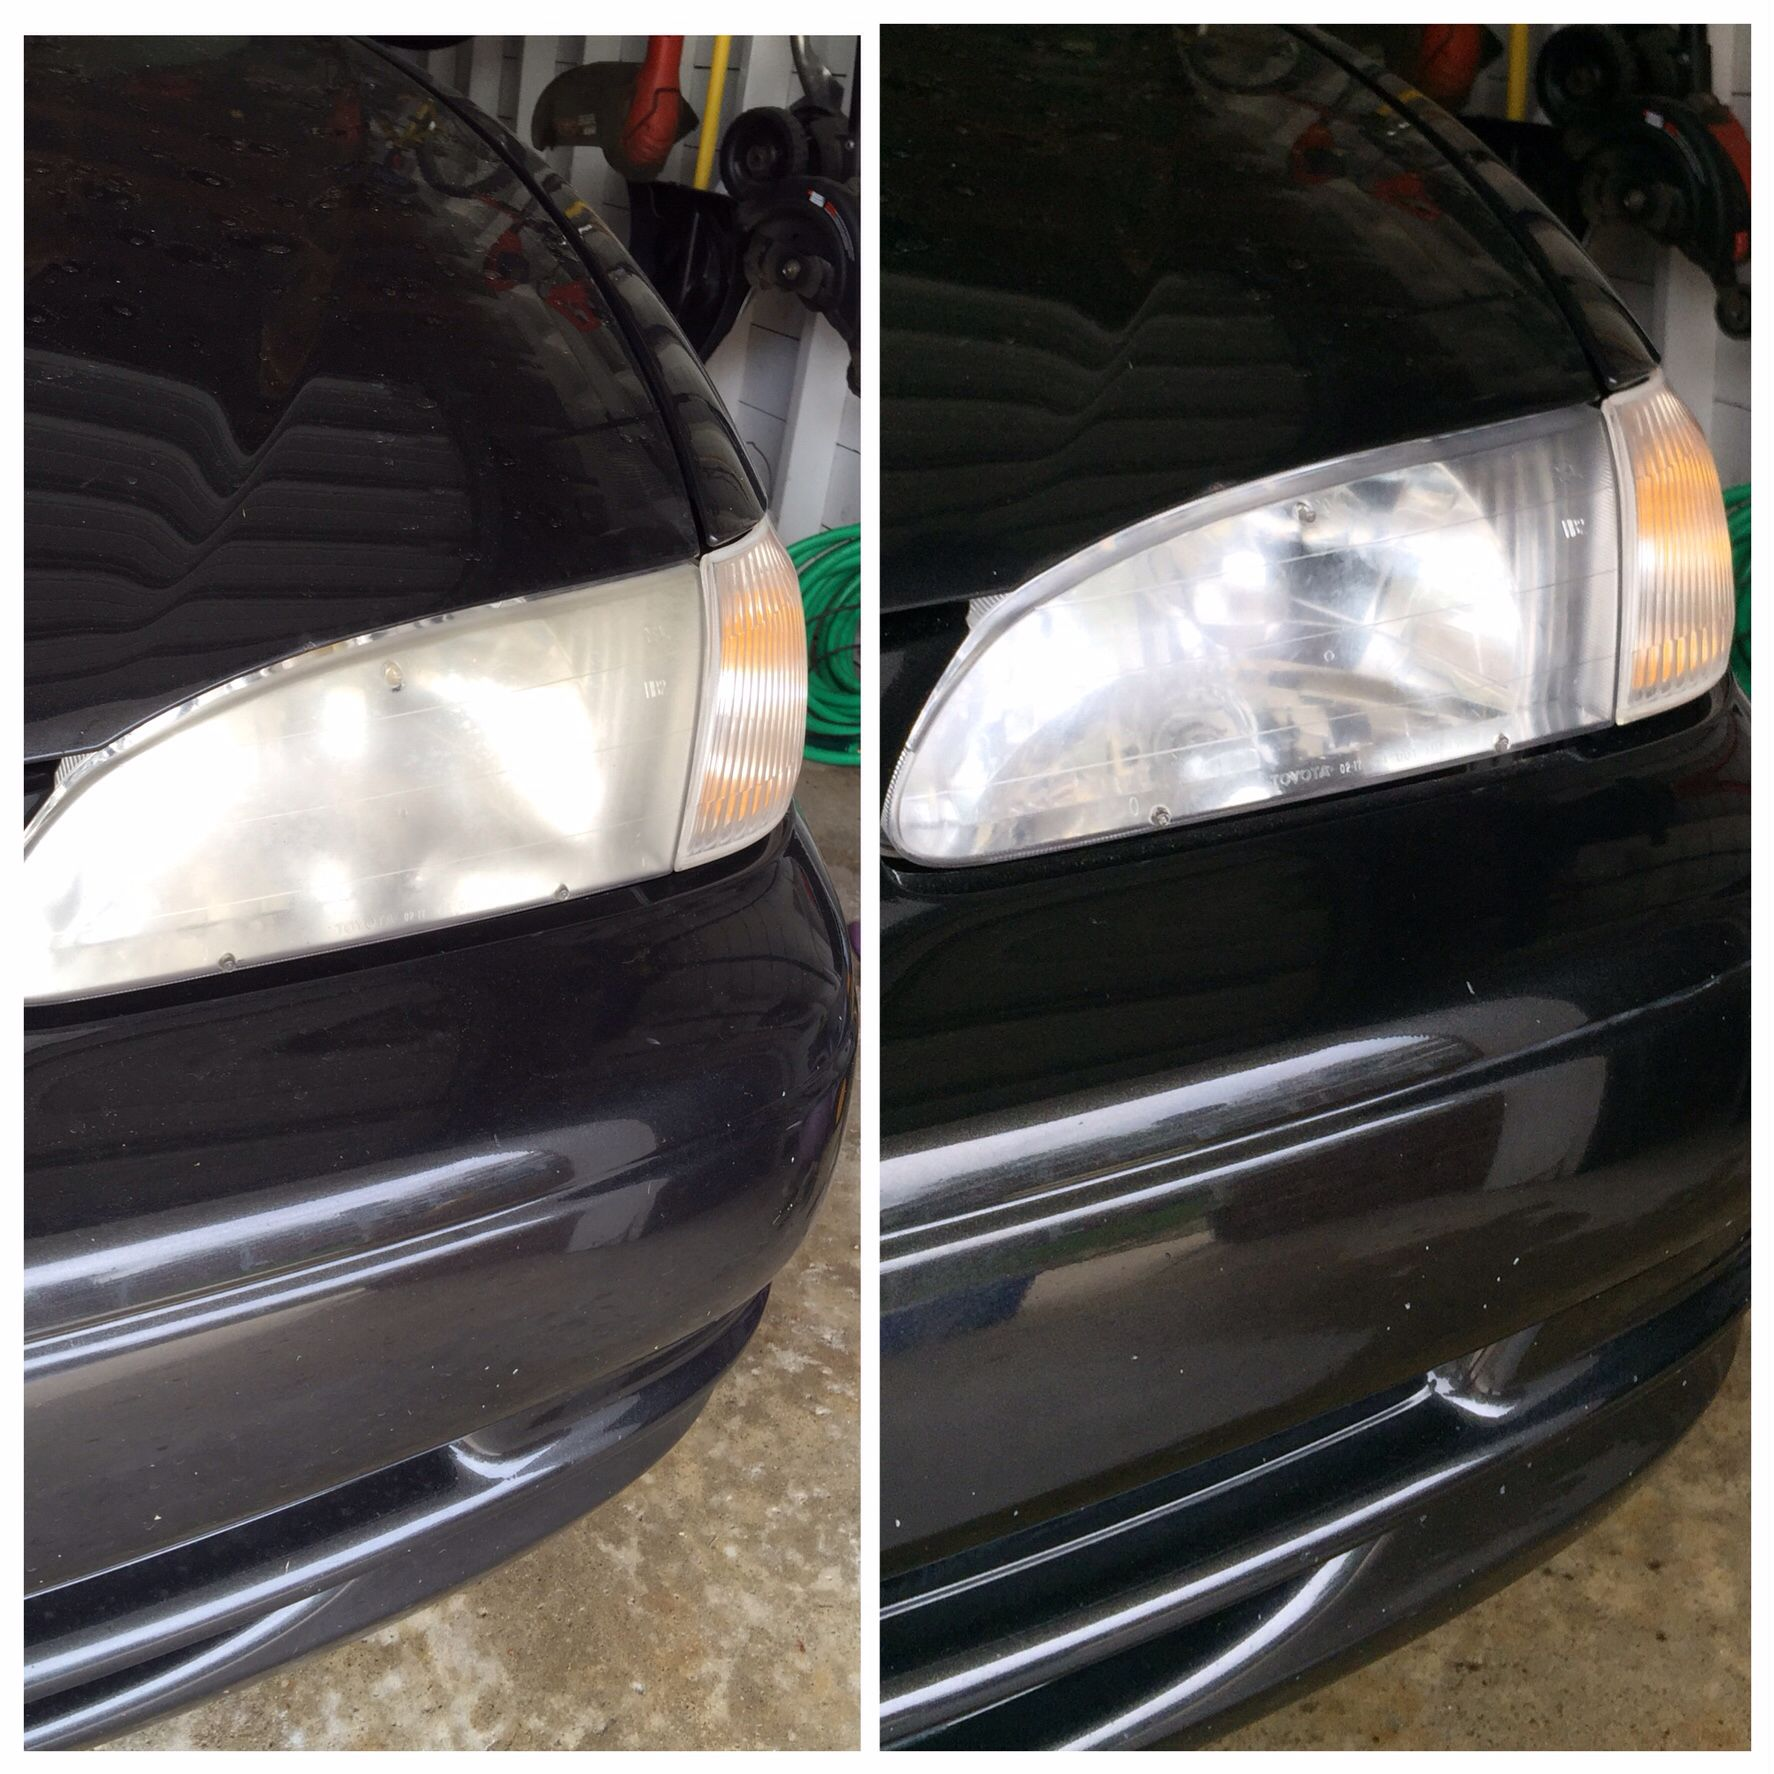 I couldn't bring myself to purchase a headlight restoration kit for $30+ for my '99 Corolla. Instead, here's what I did: 1. Wash headlights; 2. Use painters tape and tape around headlights to protect paint; 3. Use 2000 grit wet/dry sandpaper and scour headlights; 4. Rinse and dry headlights; 5. Apply car wax on headlights and let dry; and 6. Use a cotton rag to buff car wax. I repeated car wax application twice. What a huge difference and less than $10.